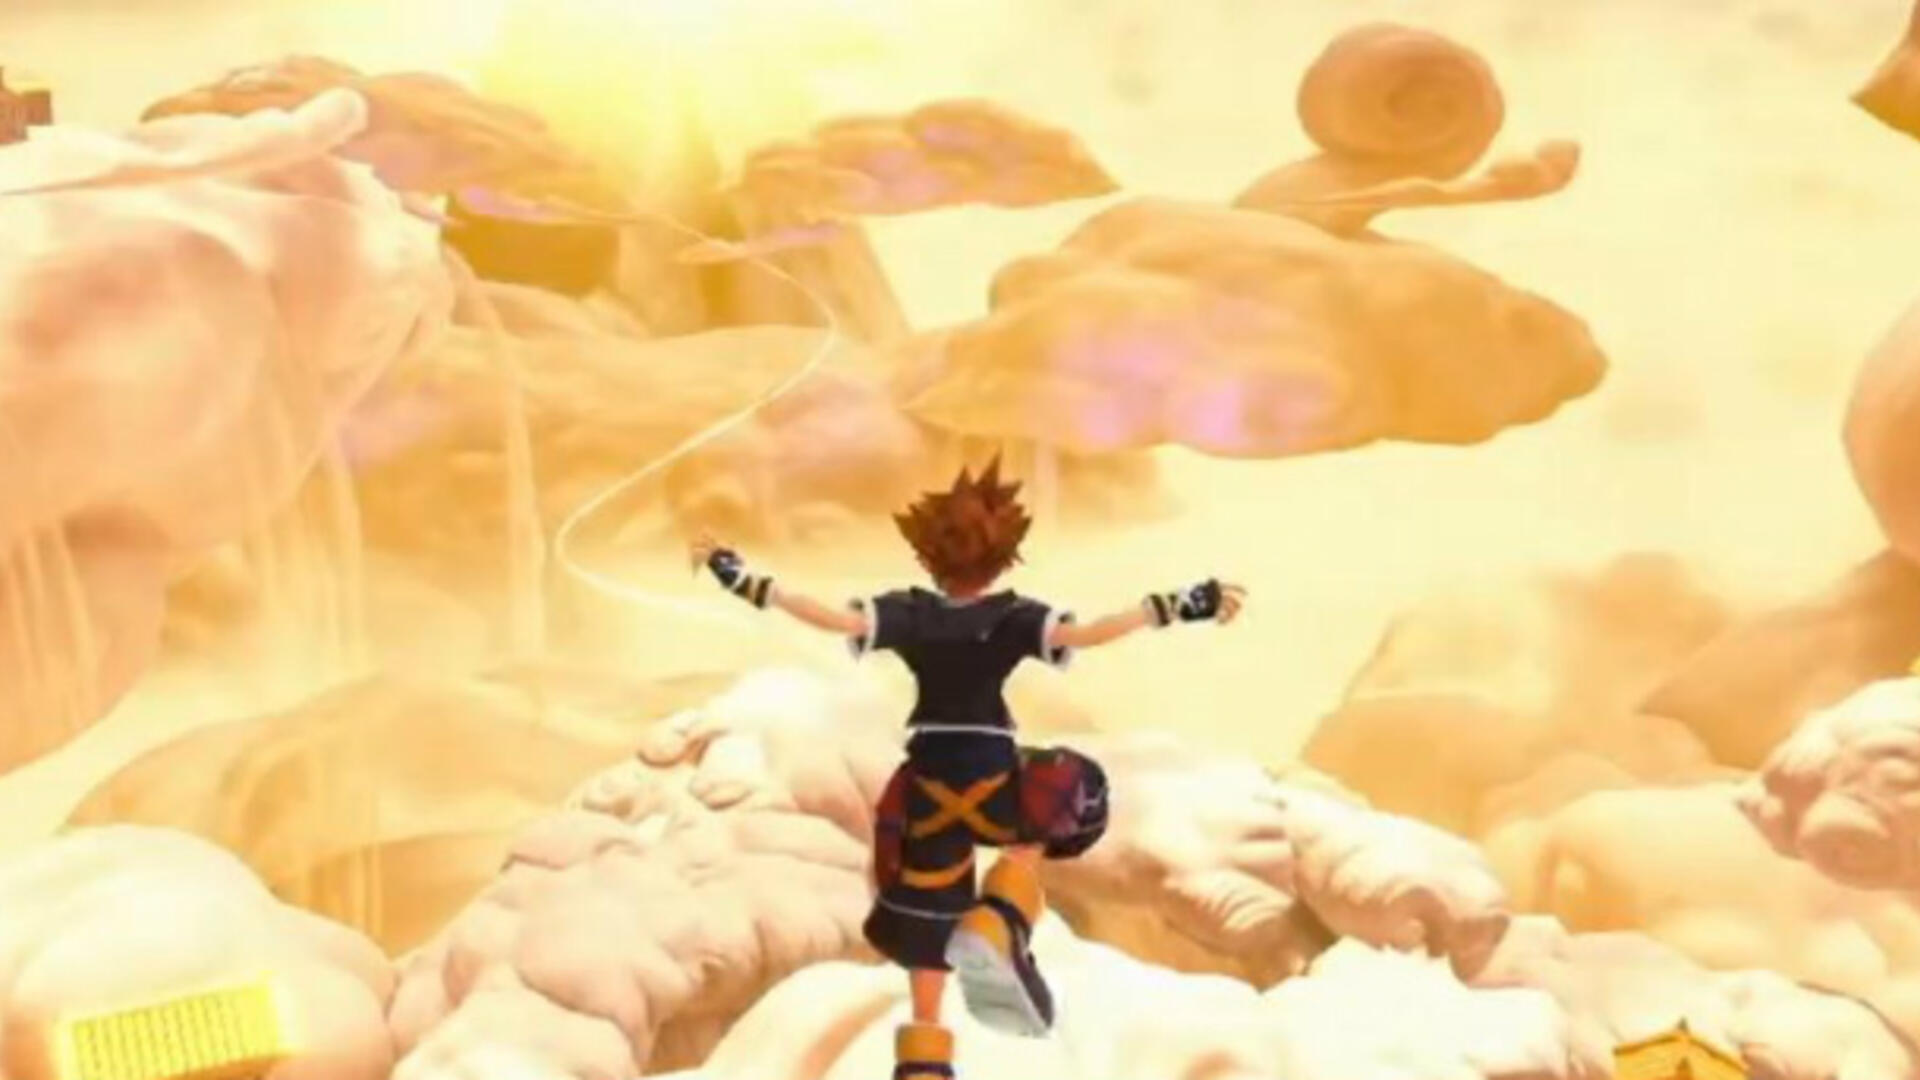 The Final Kingdom Hearts 3 Trailer is Bursting with Lore